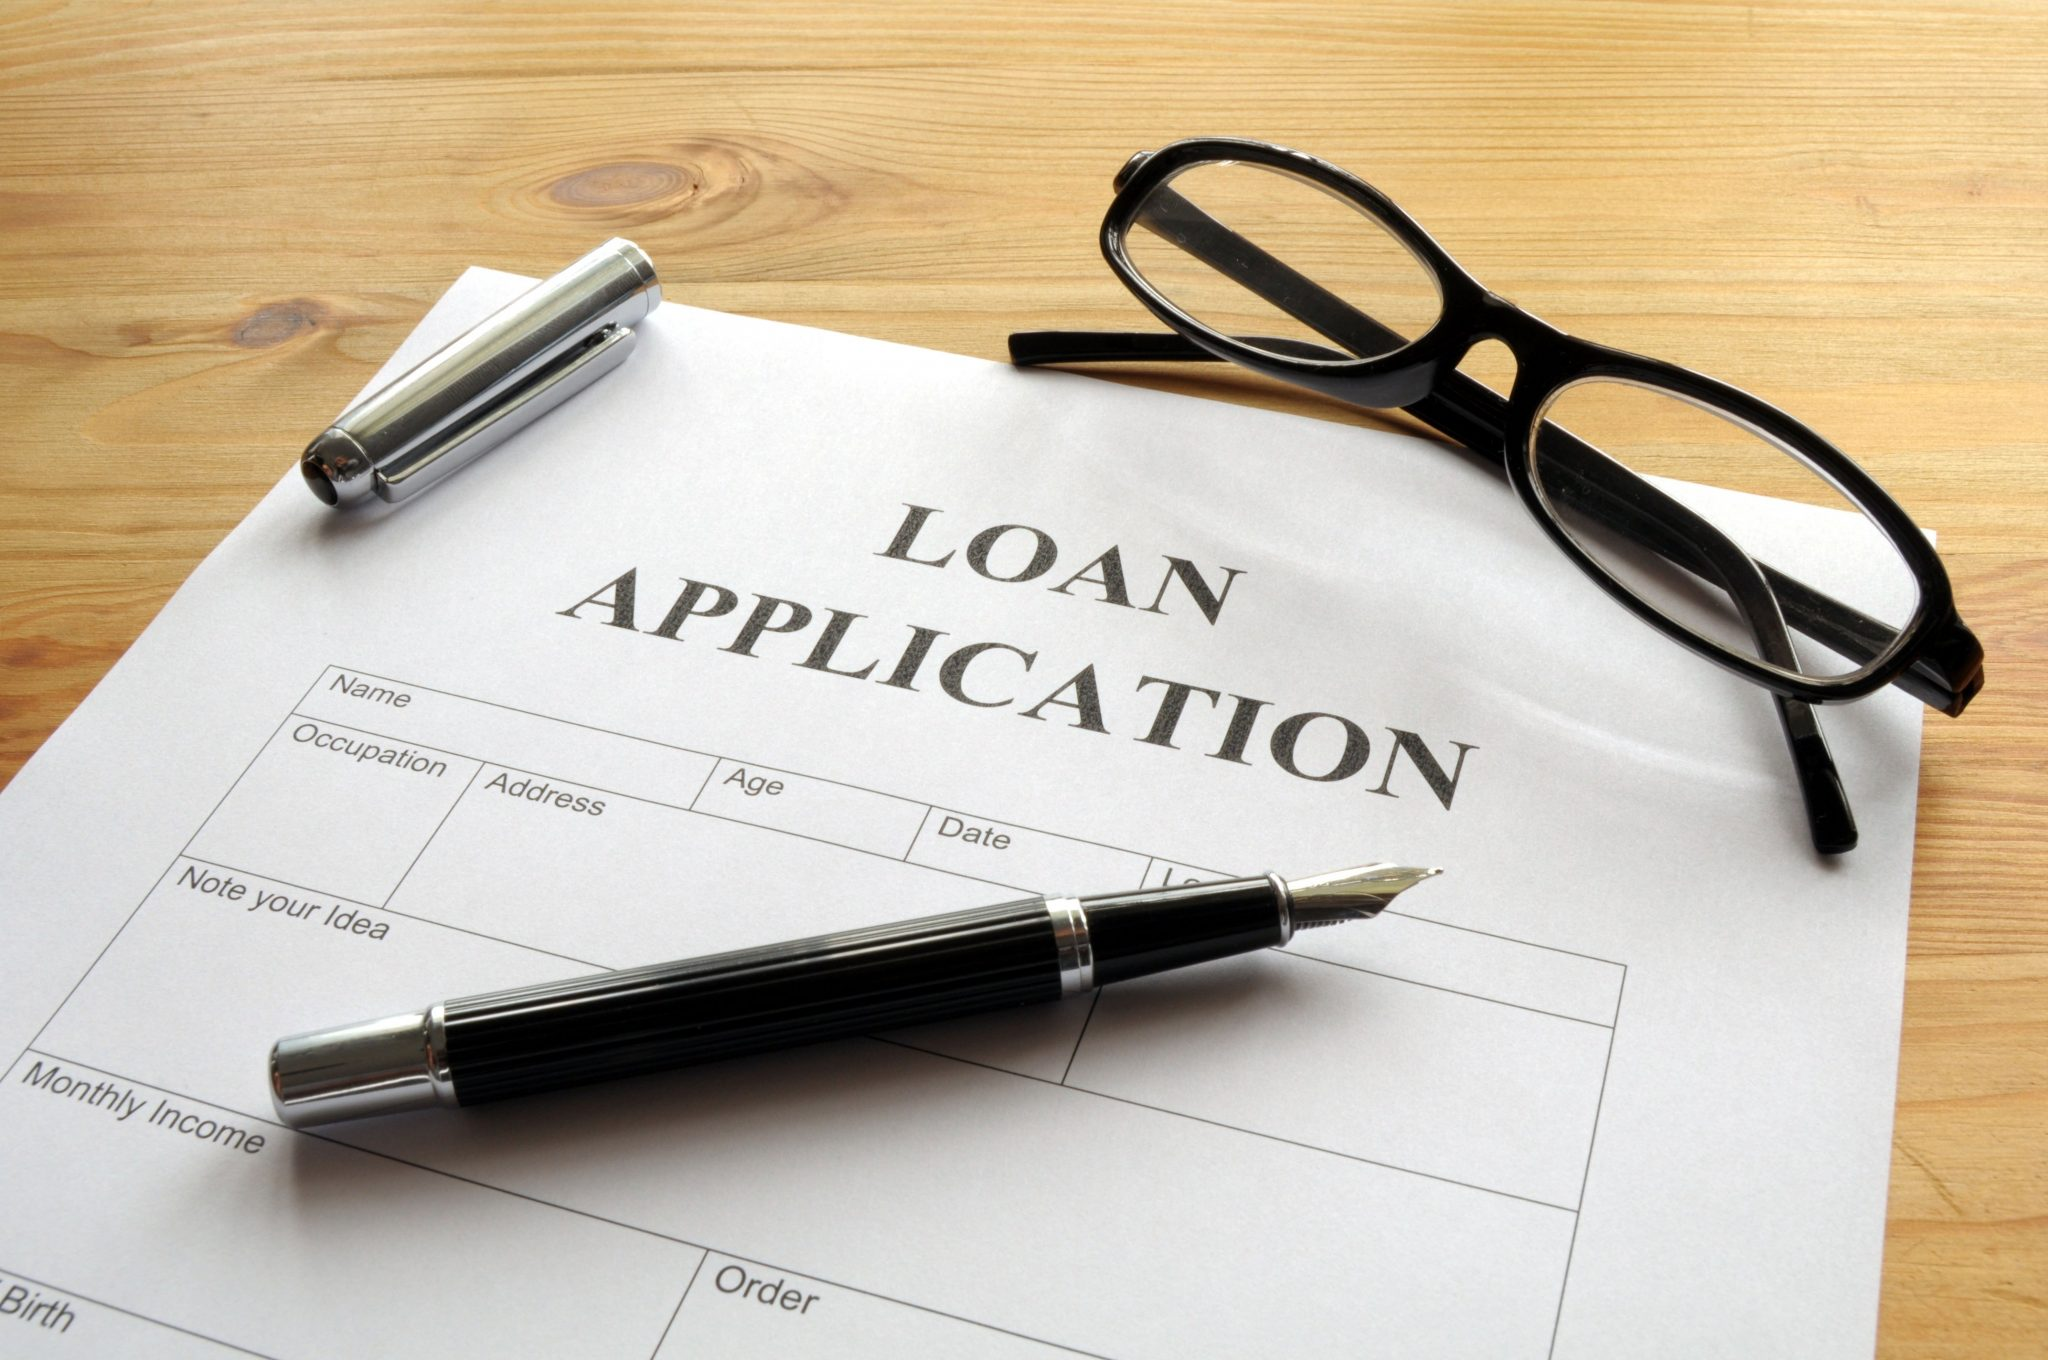 loan-application-laon-rejection